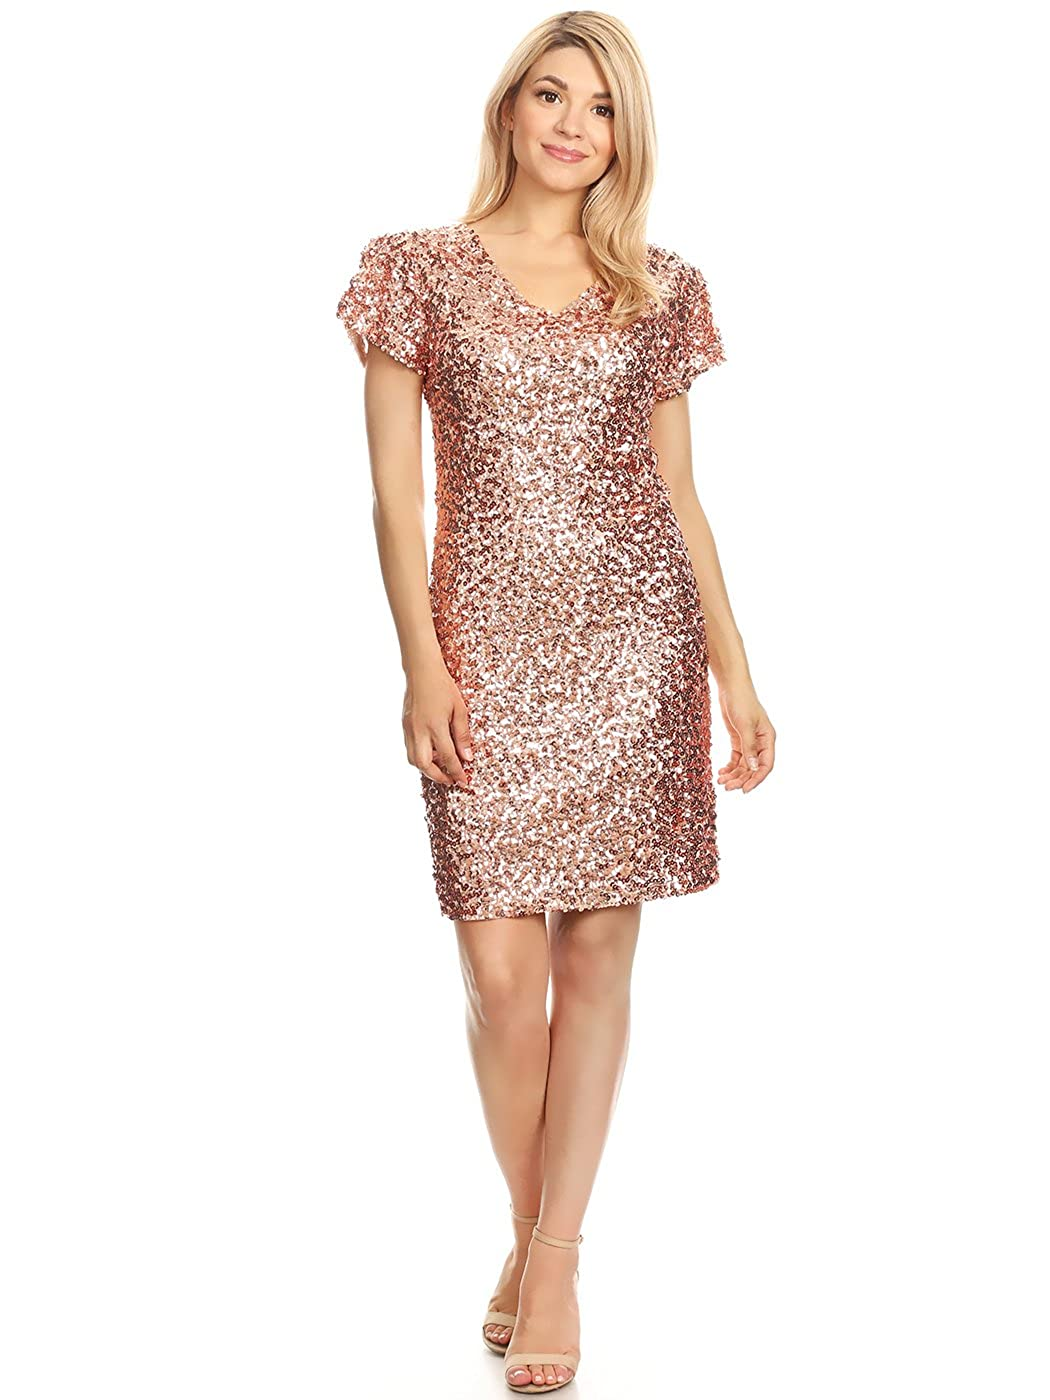 842ccb89c Anna-Kaci Sexy Short Sleeve Sequin Bodycon Mini Cocktail Party Club Dress,  XL, Rose Gold: Amazon.co.uk: Clothing